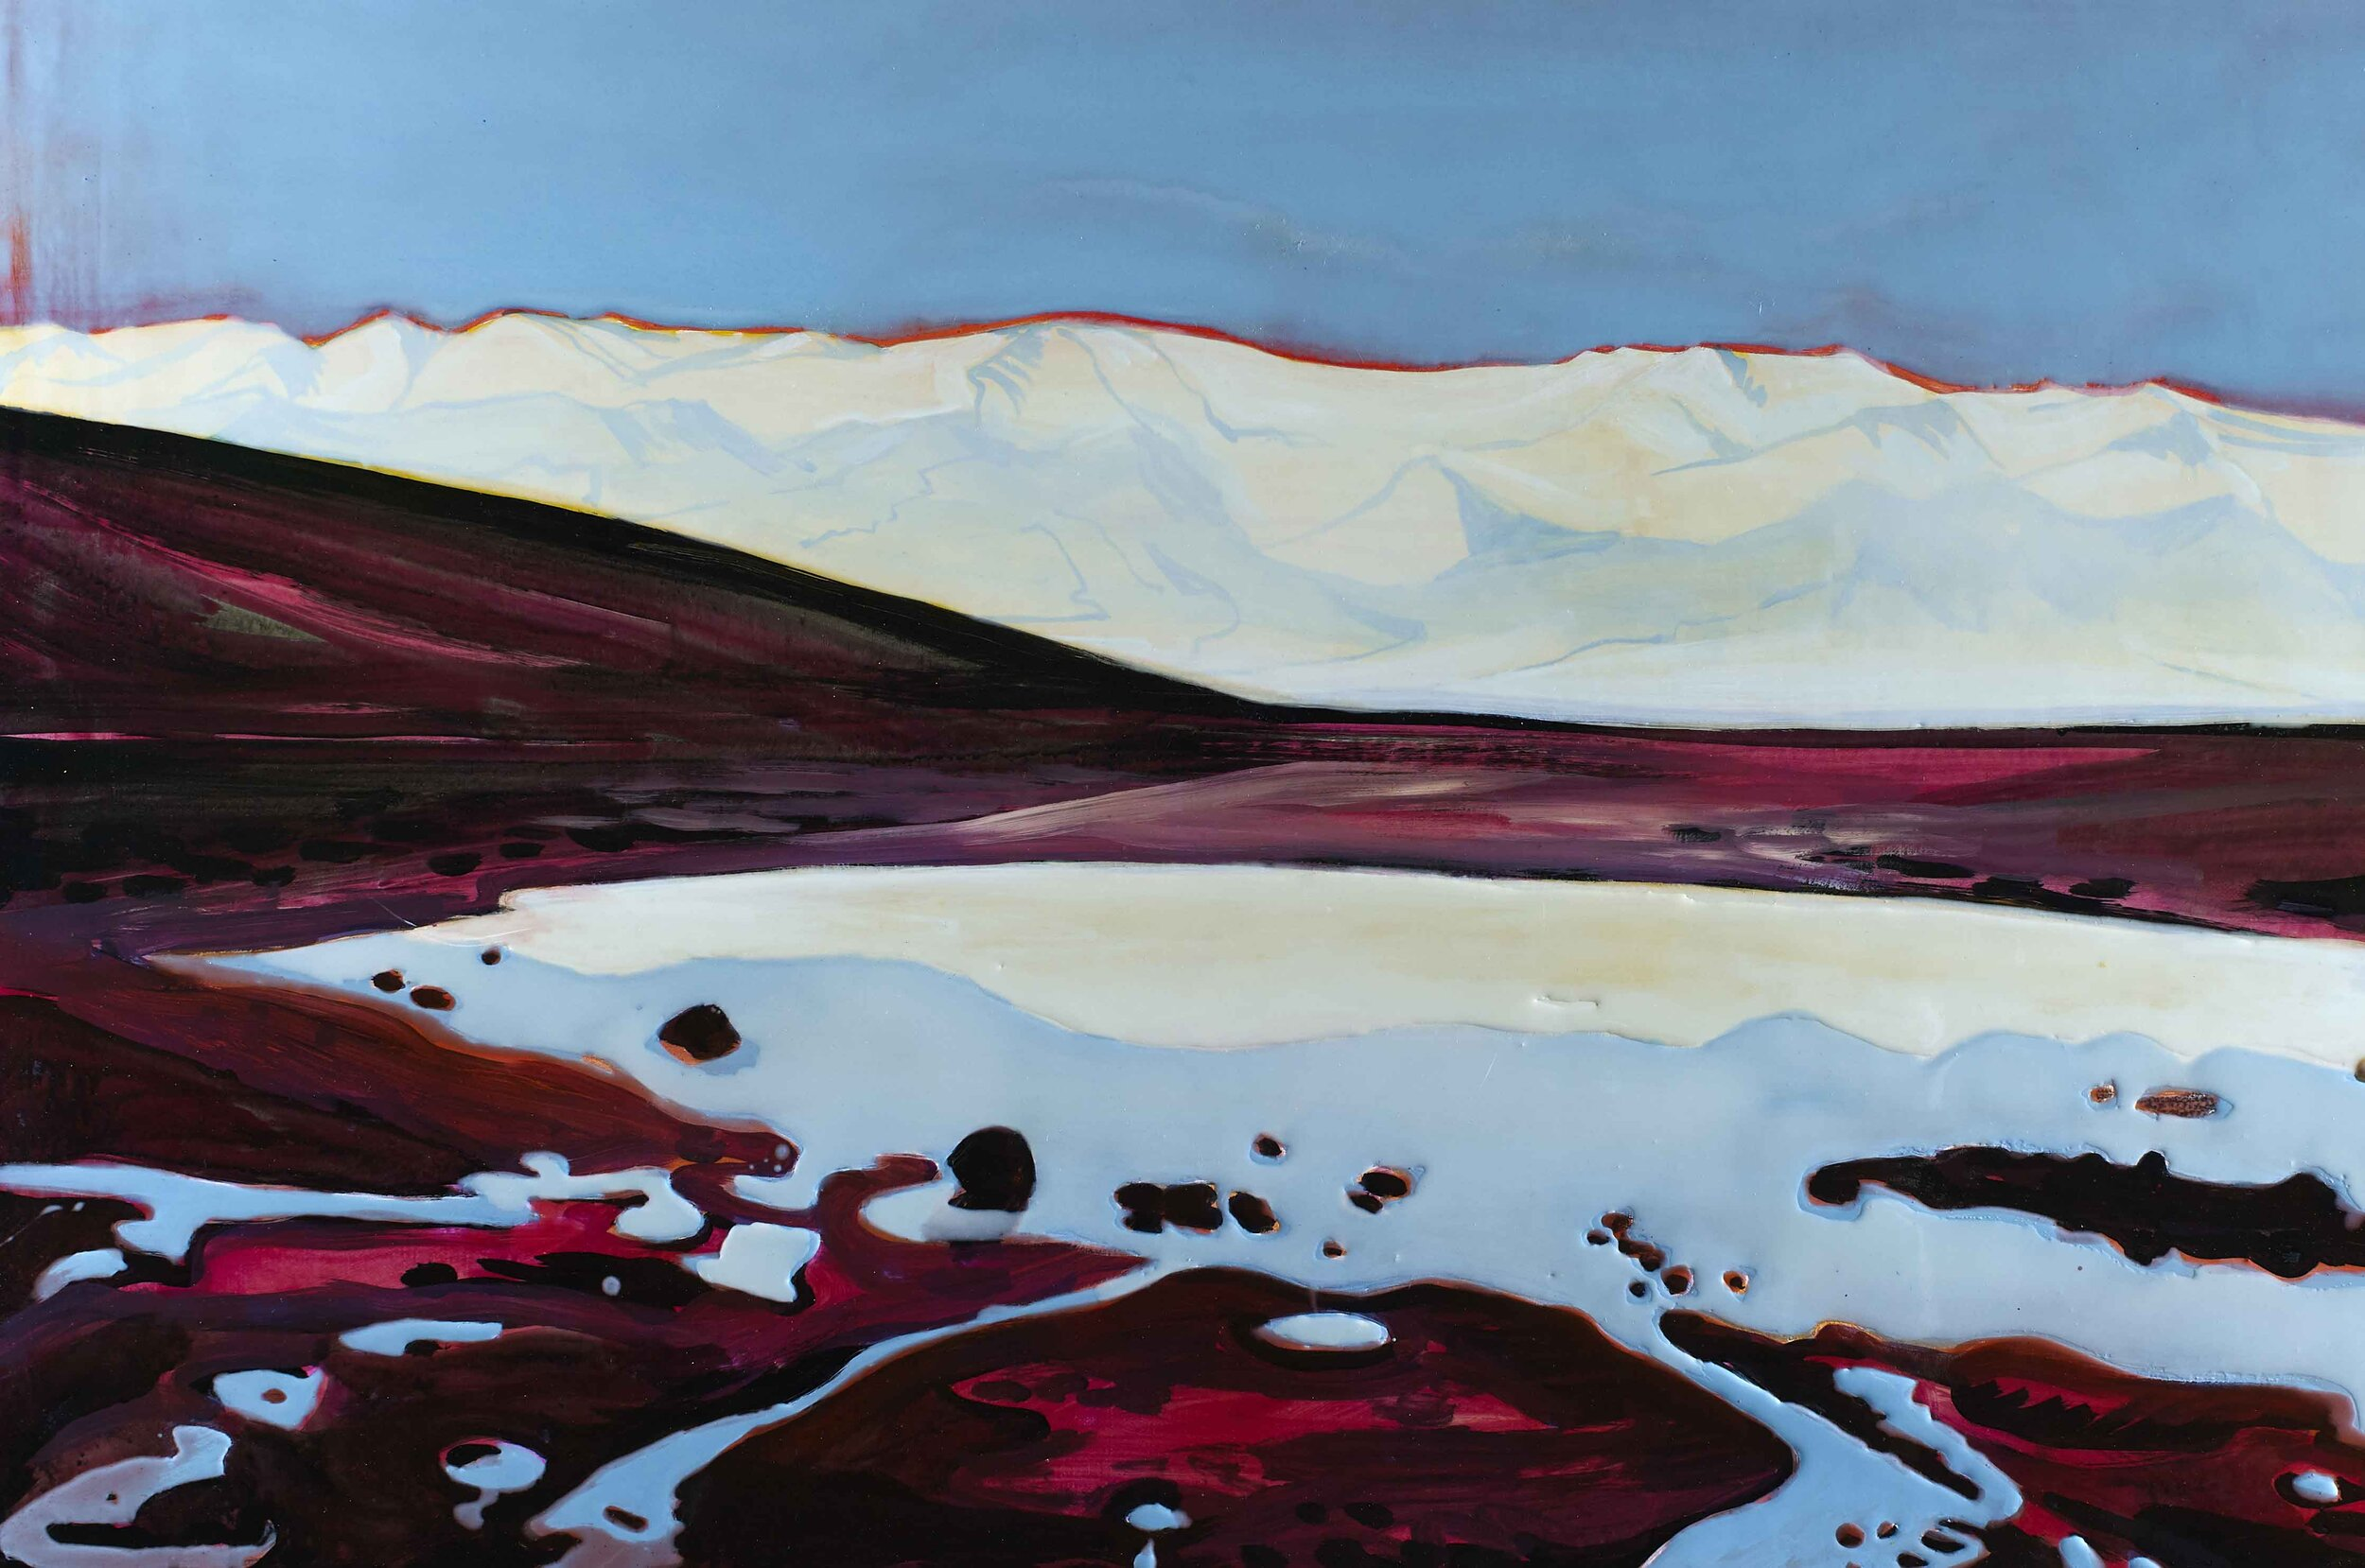 DEATH VALLEY SINK  75 X 120 cm Acrylic and epoxy on canvas